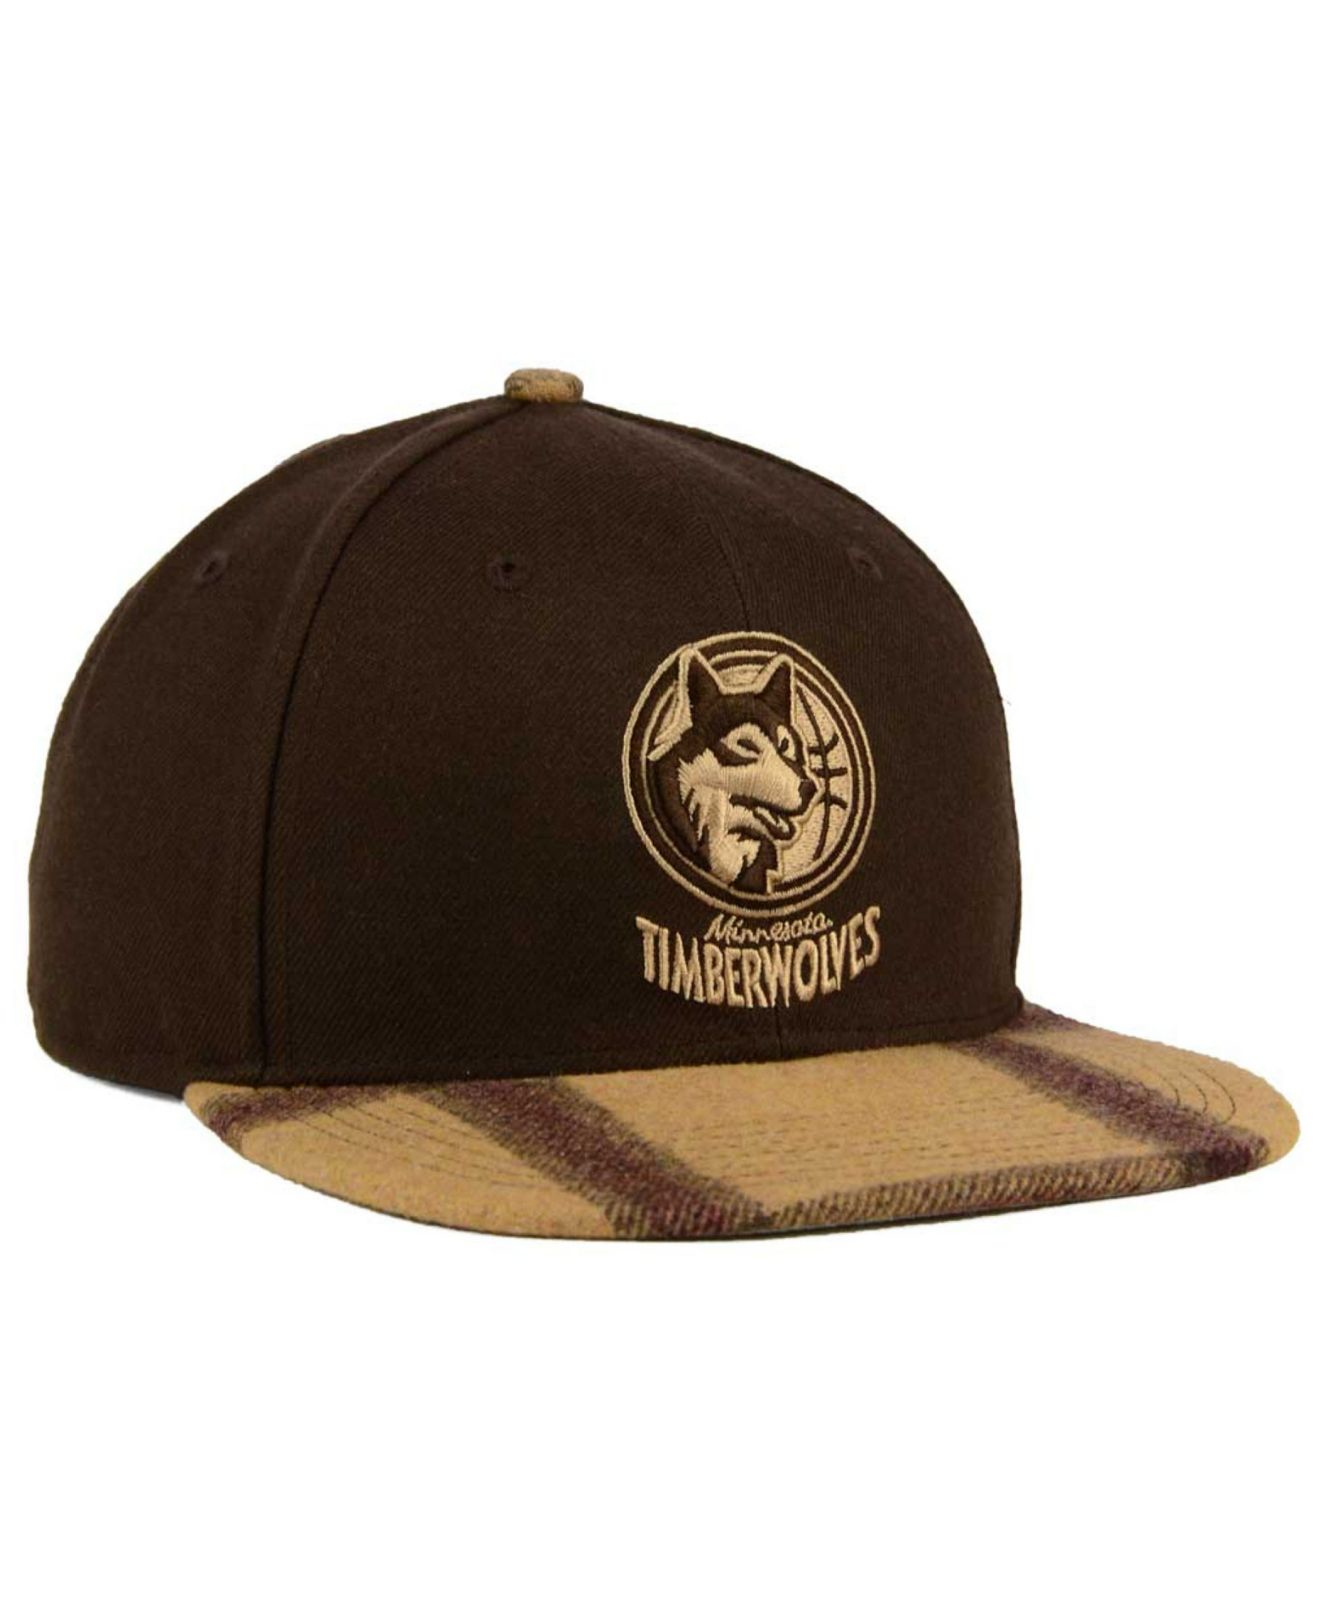 separation shoes 6218e 0ad24 ... discount code for lyst 47 brand minnesota timberwolves alpaca snapback  cap in brown 9dd85 e3bd9